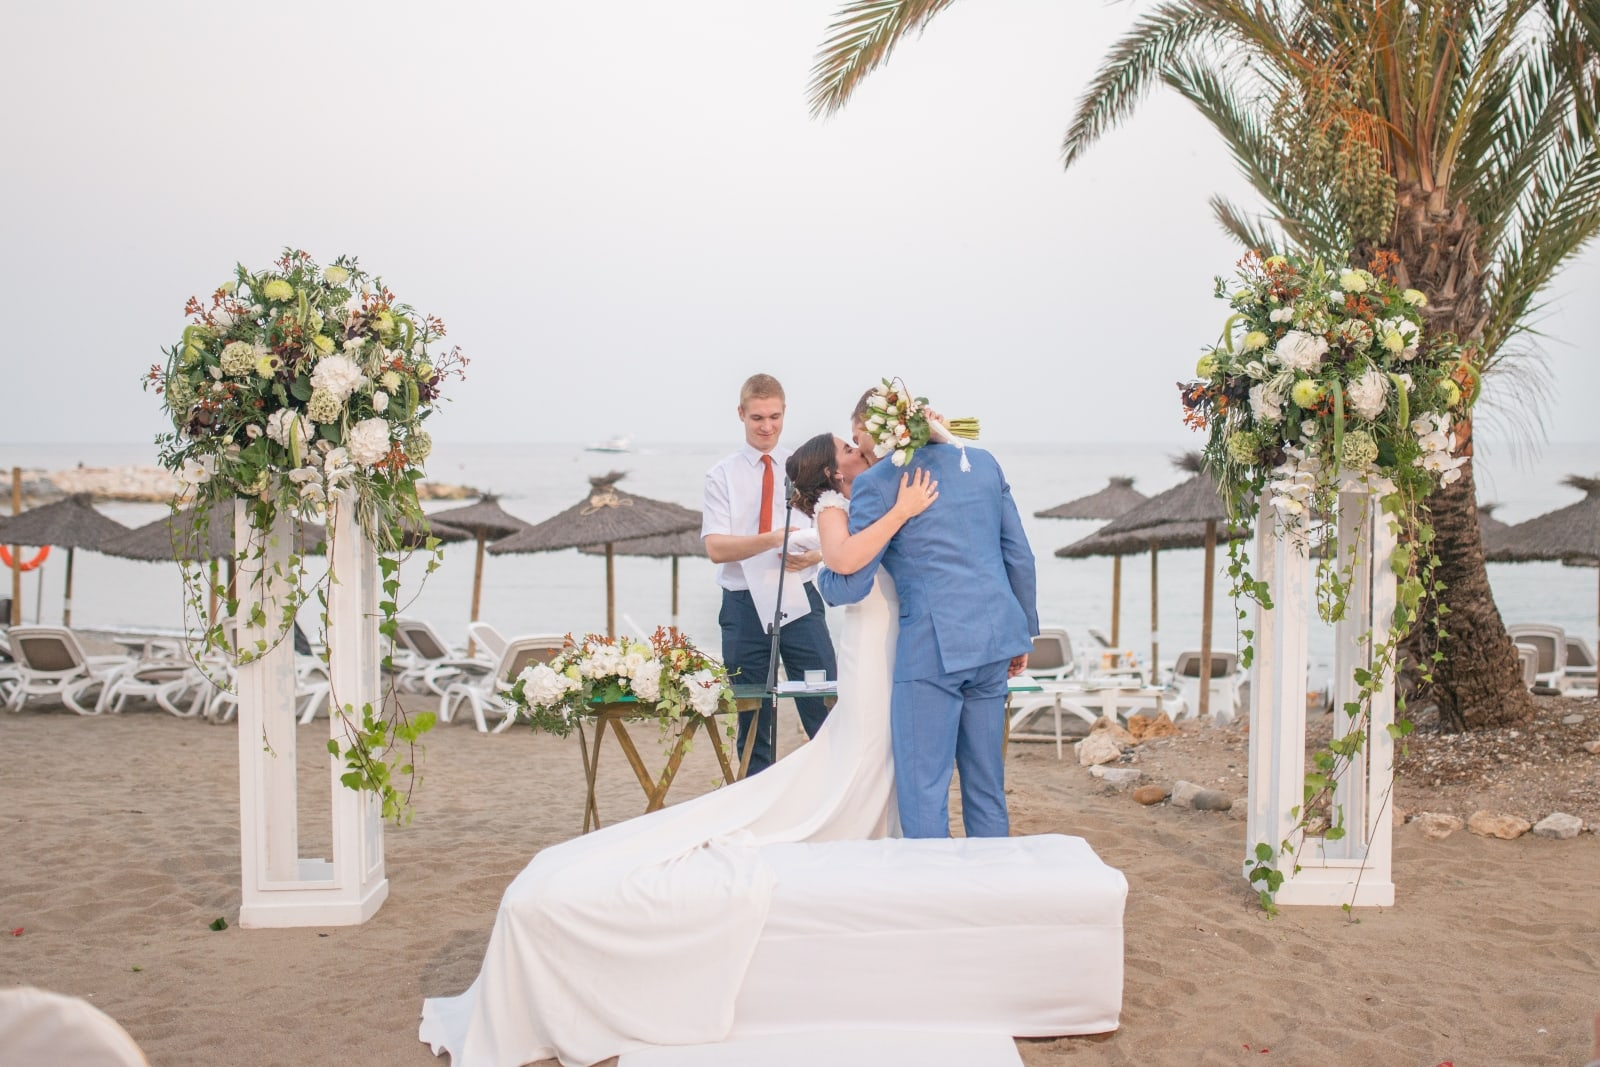 Destination Wedding in Marbella Spain | Destination Wedding Details